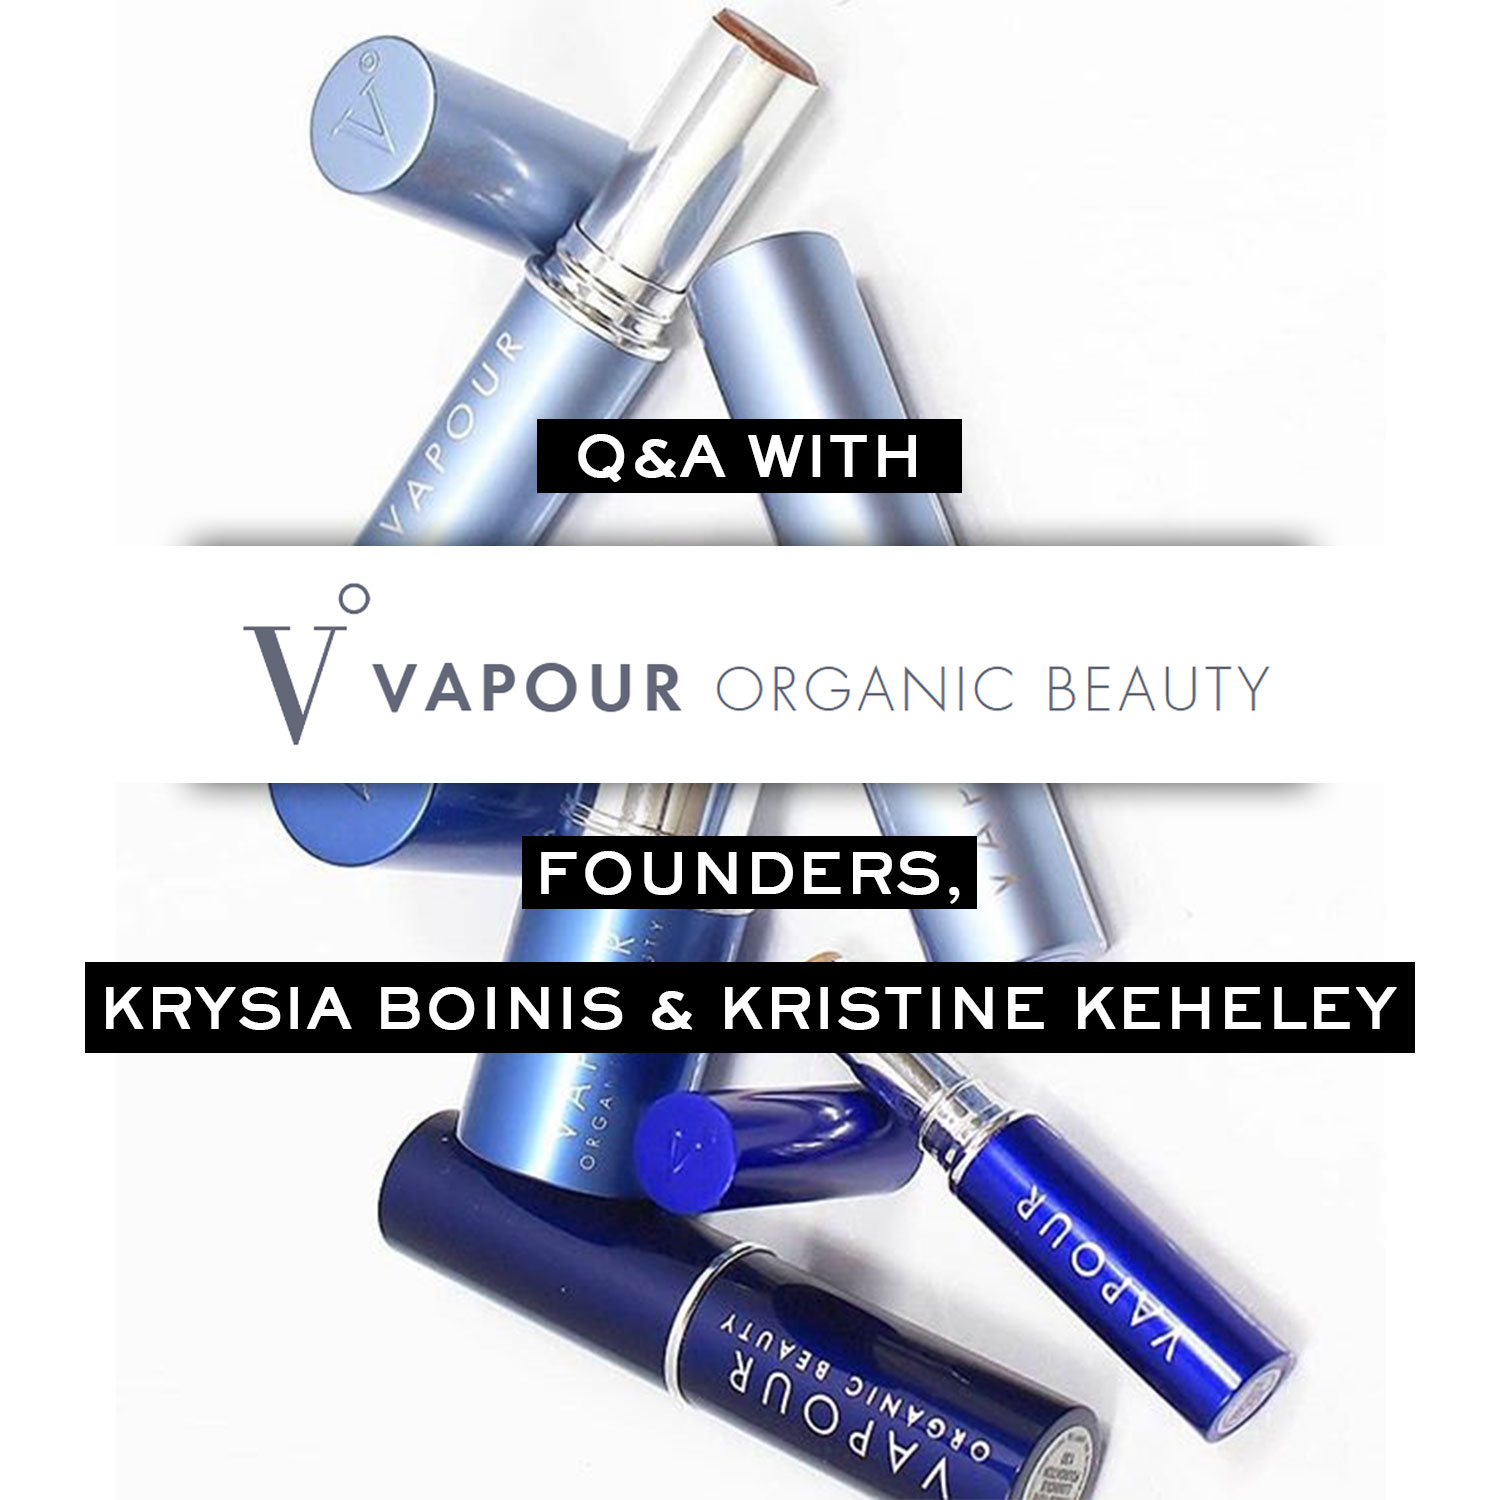 Q&A with Vapour Organic Beauty Founders, Krysia Boinis & Kristine Keheley